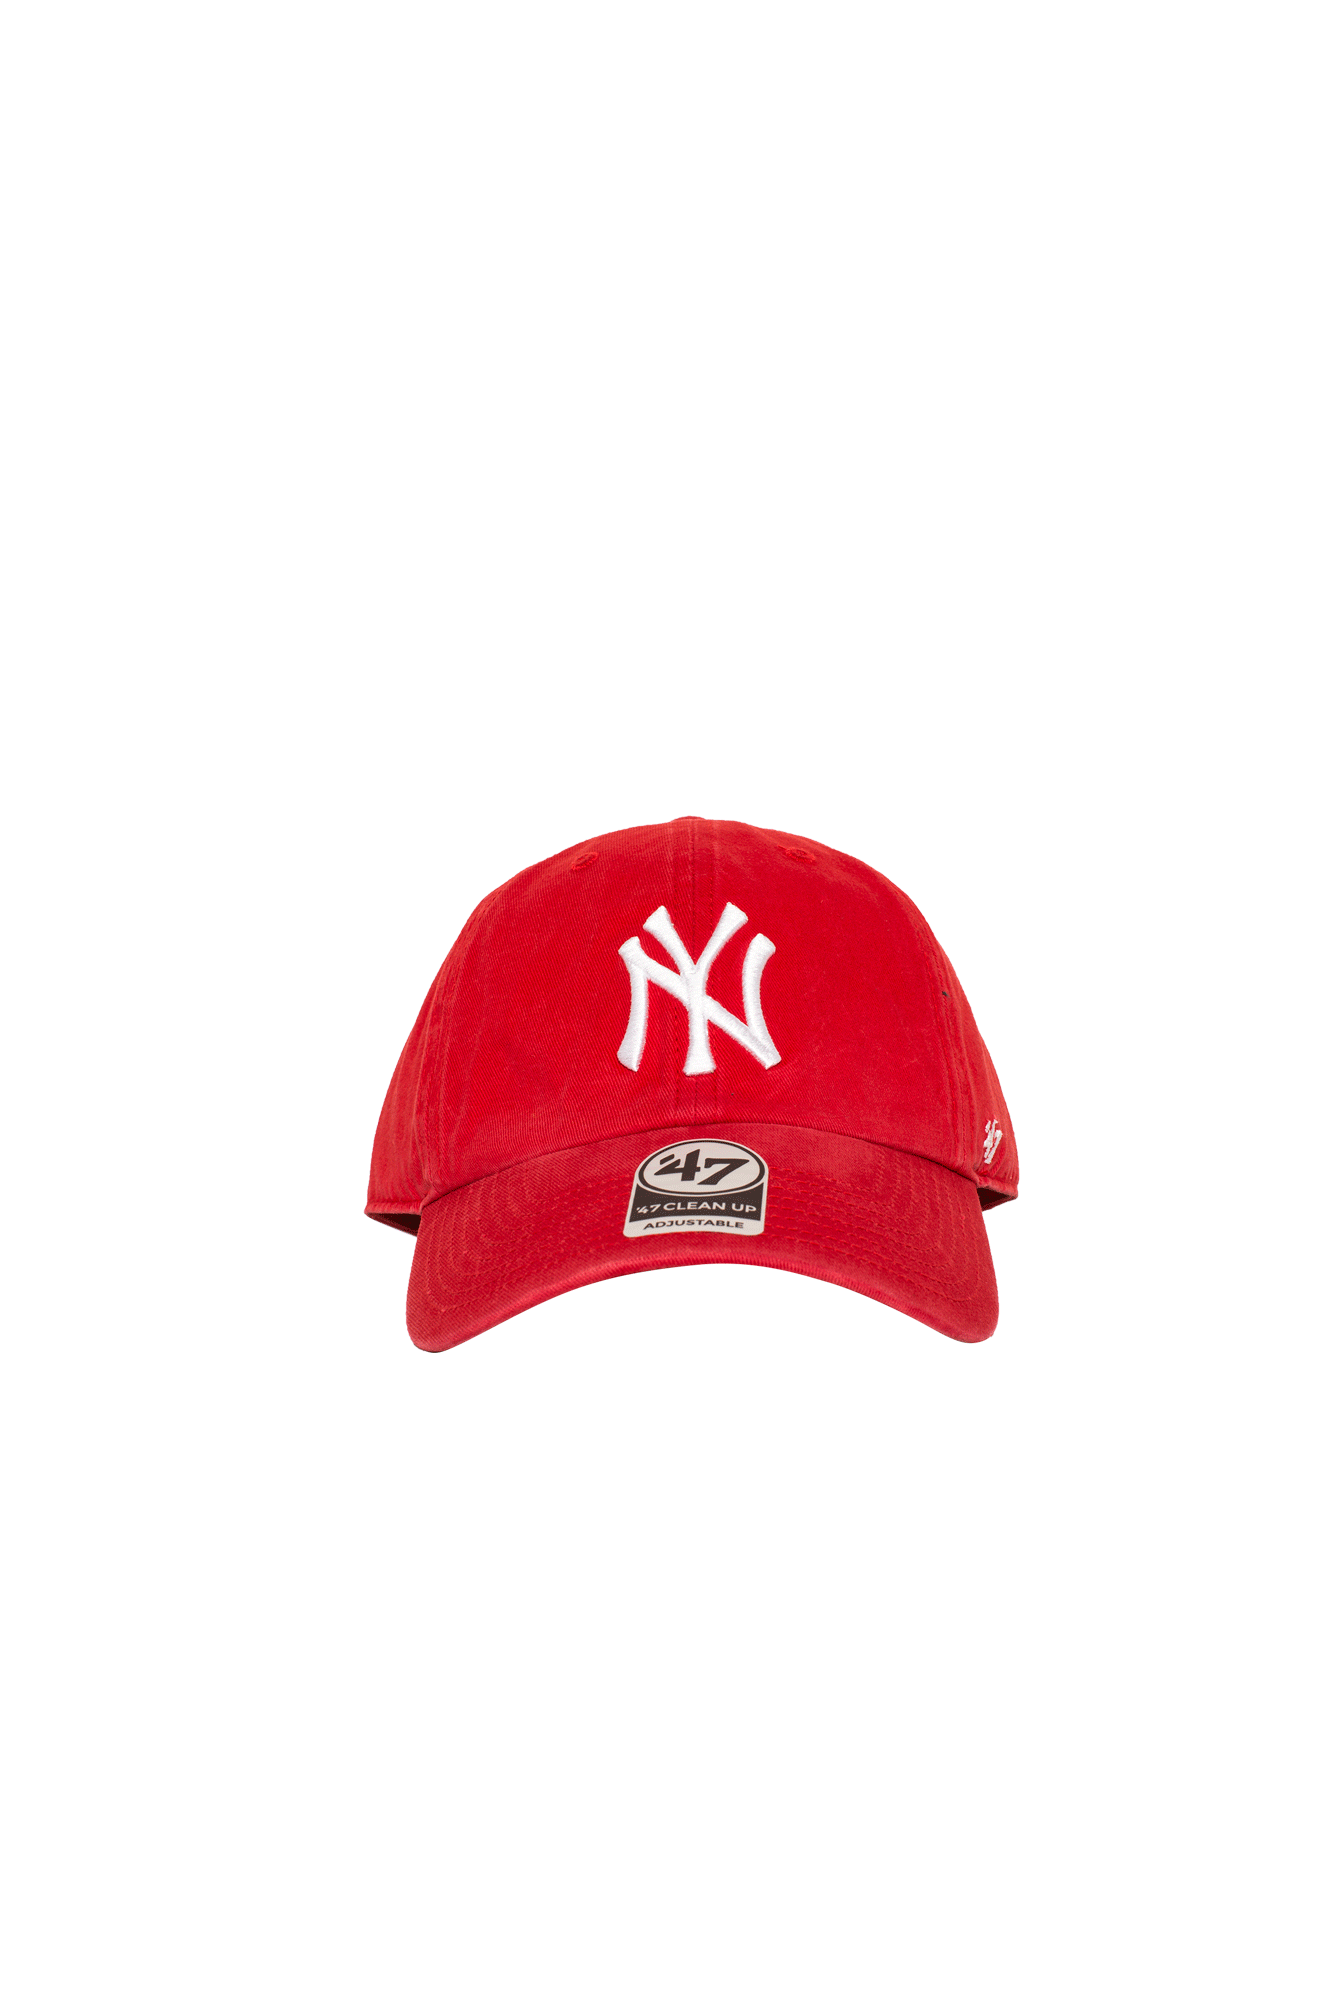 47 Cappelli Clean Up New York Yankees Rosso 47-B-RGW17#GWS-#NL-RDC#OS - One Block Down